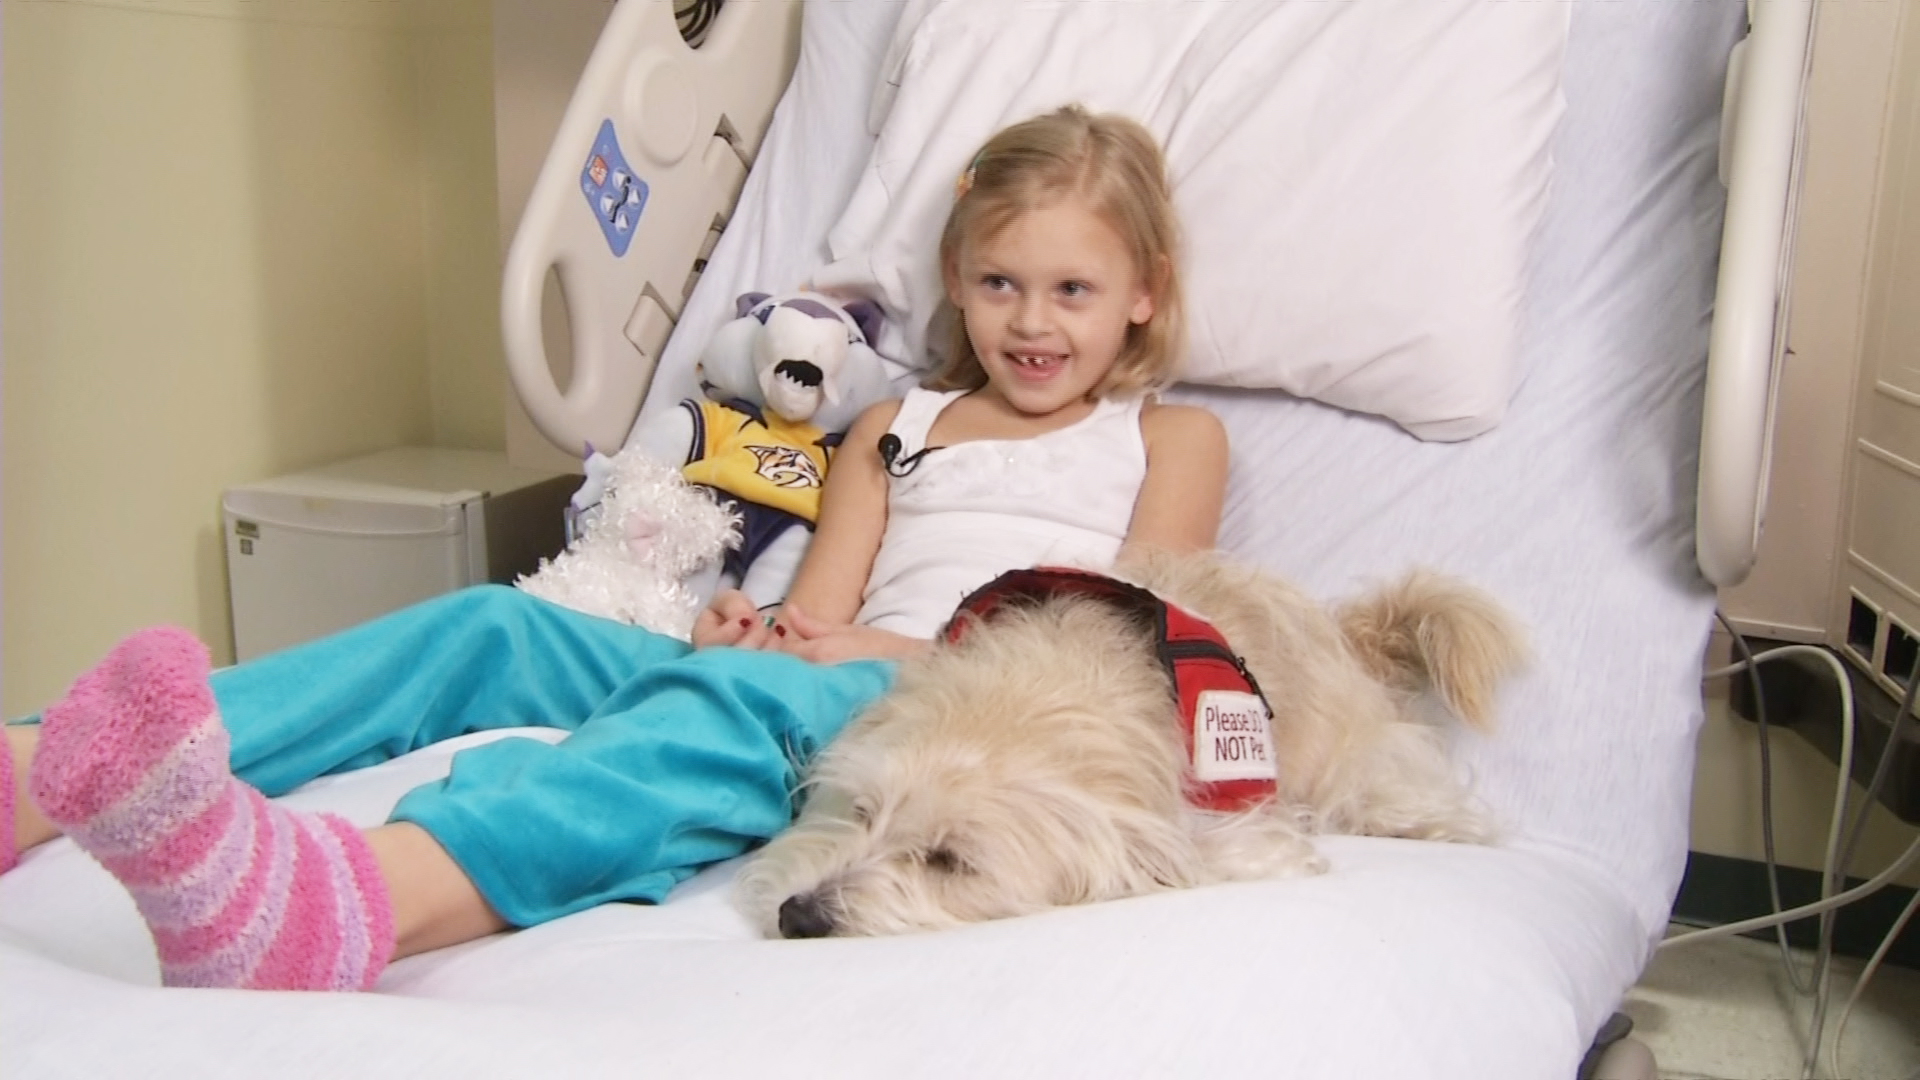 Little Angel Rescue Dog Helps Doctors Monitor Girl